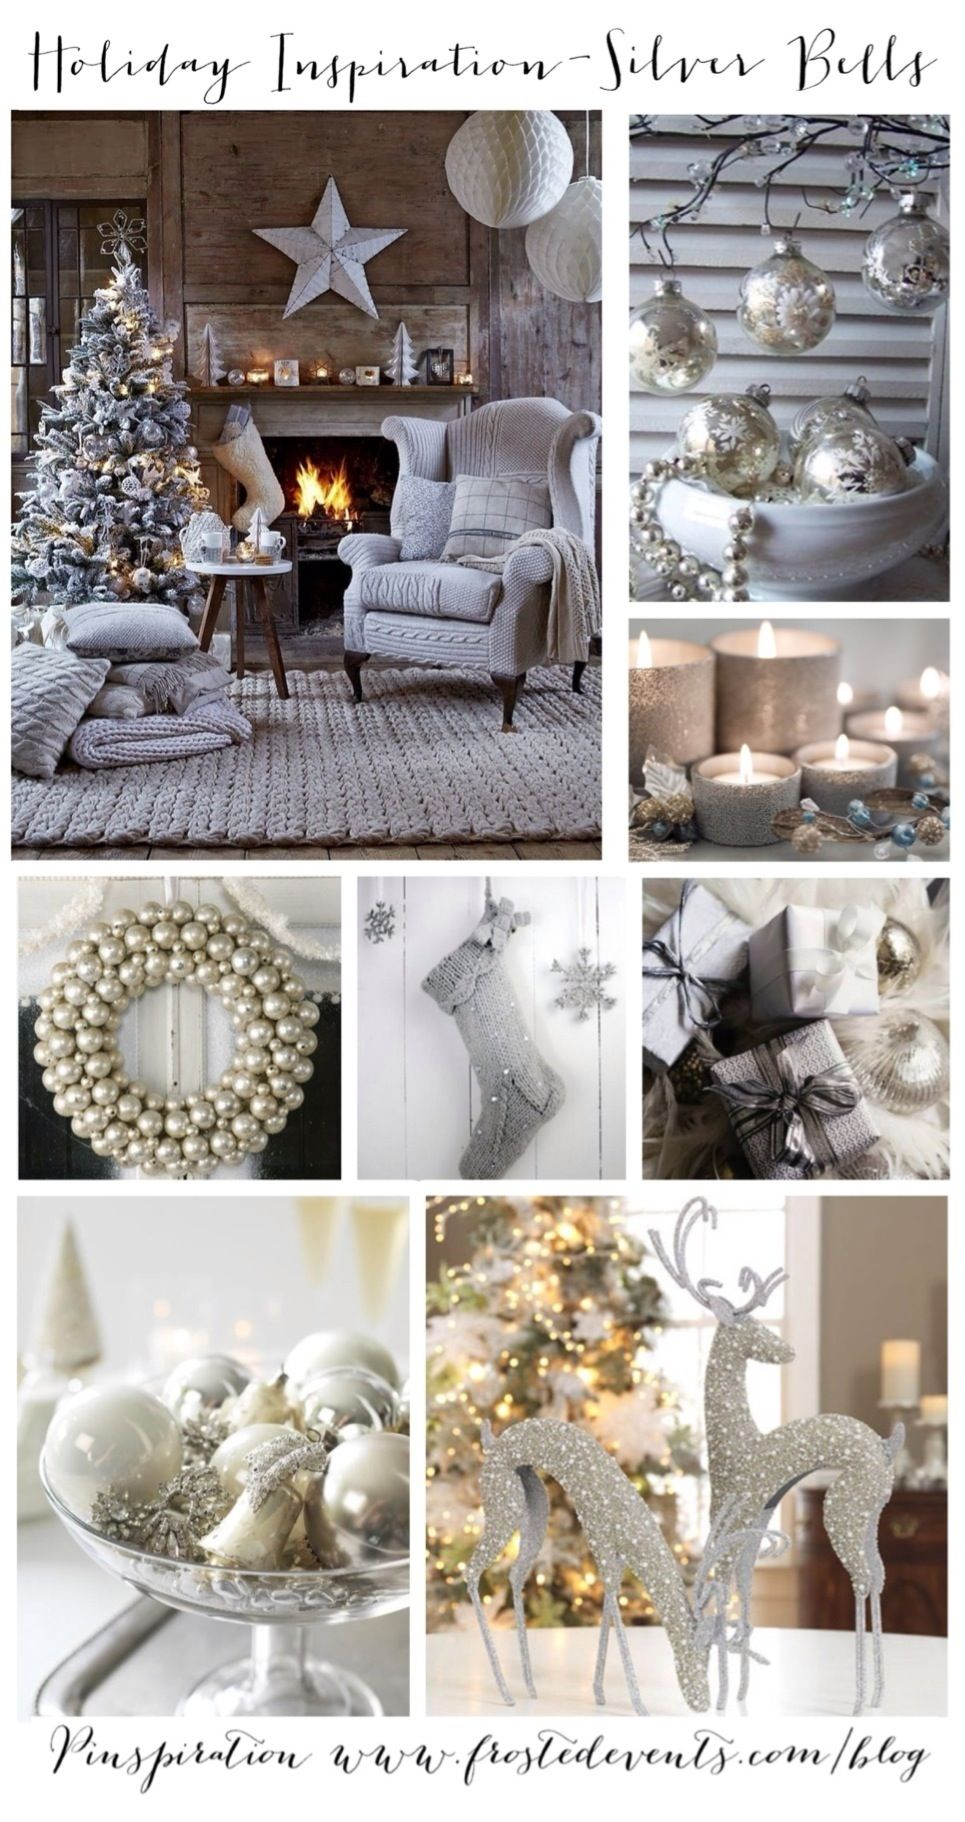 Holiday Inspiration Silver Bells Christmas ideas for